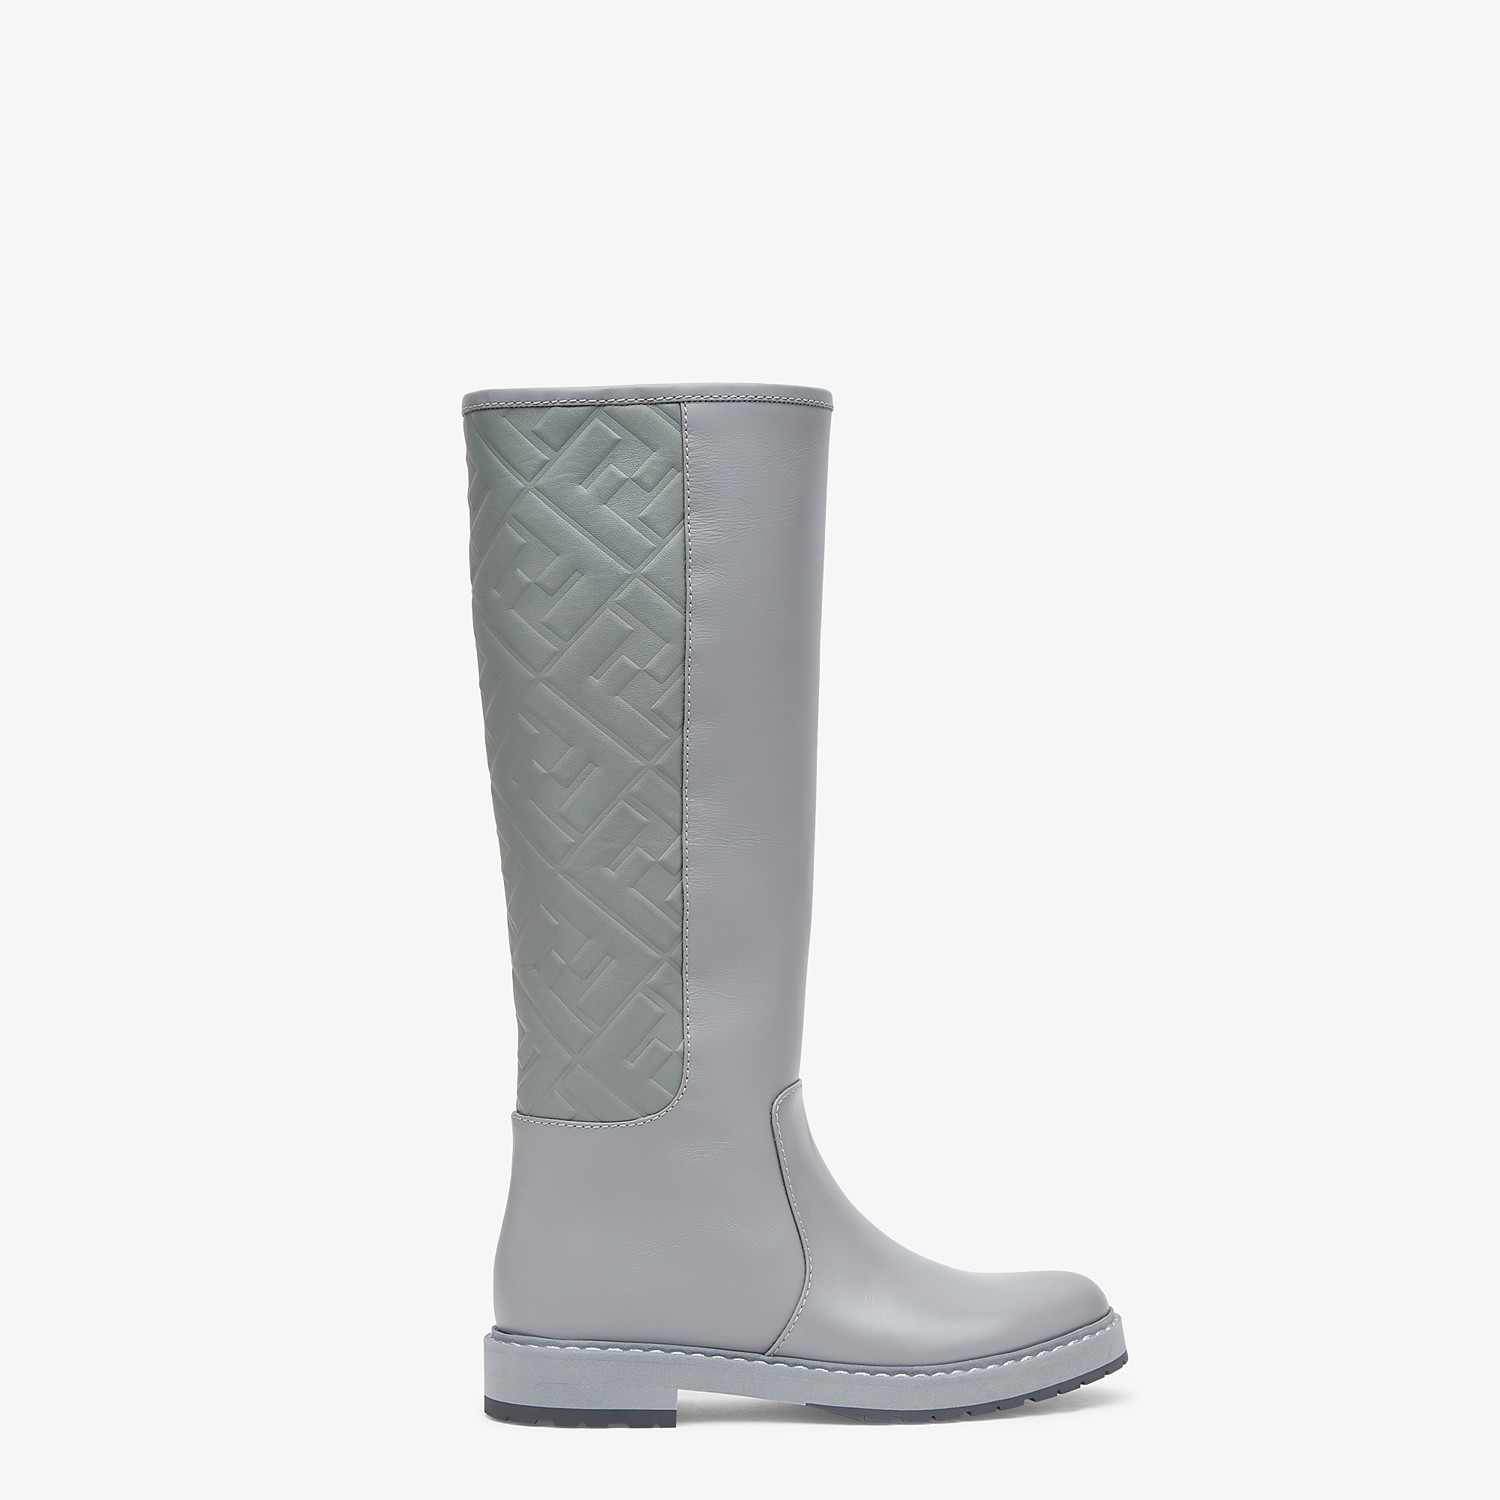 FENDI BOOTS - Grey leather boots - view 1 detail